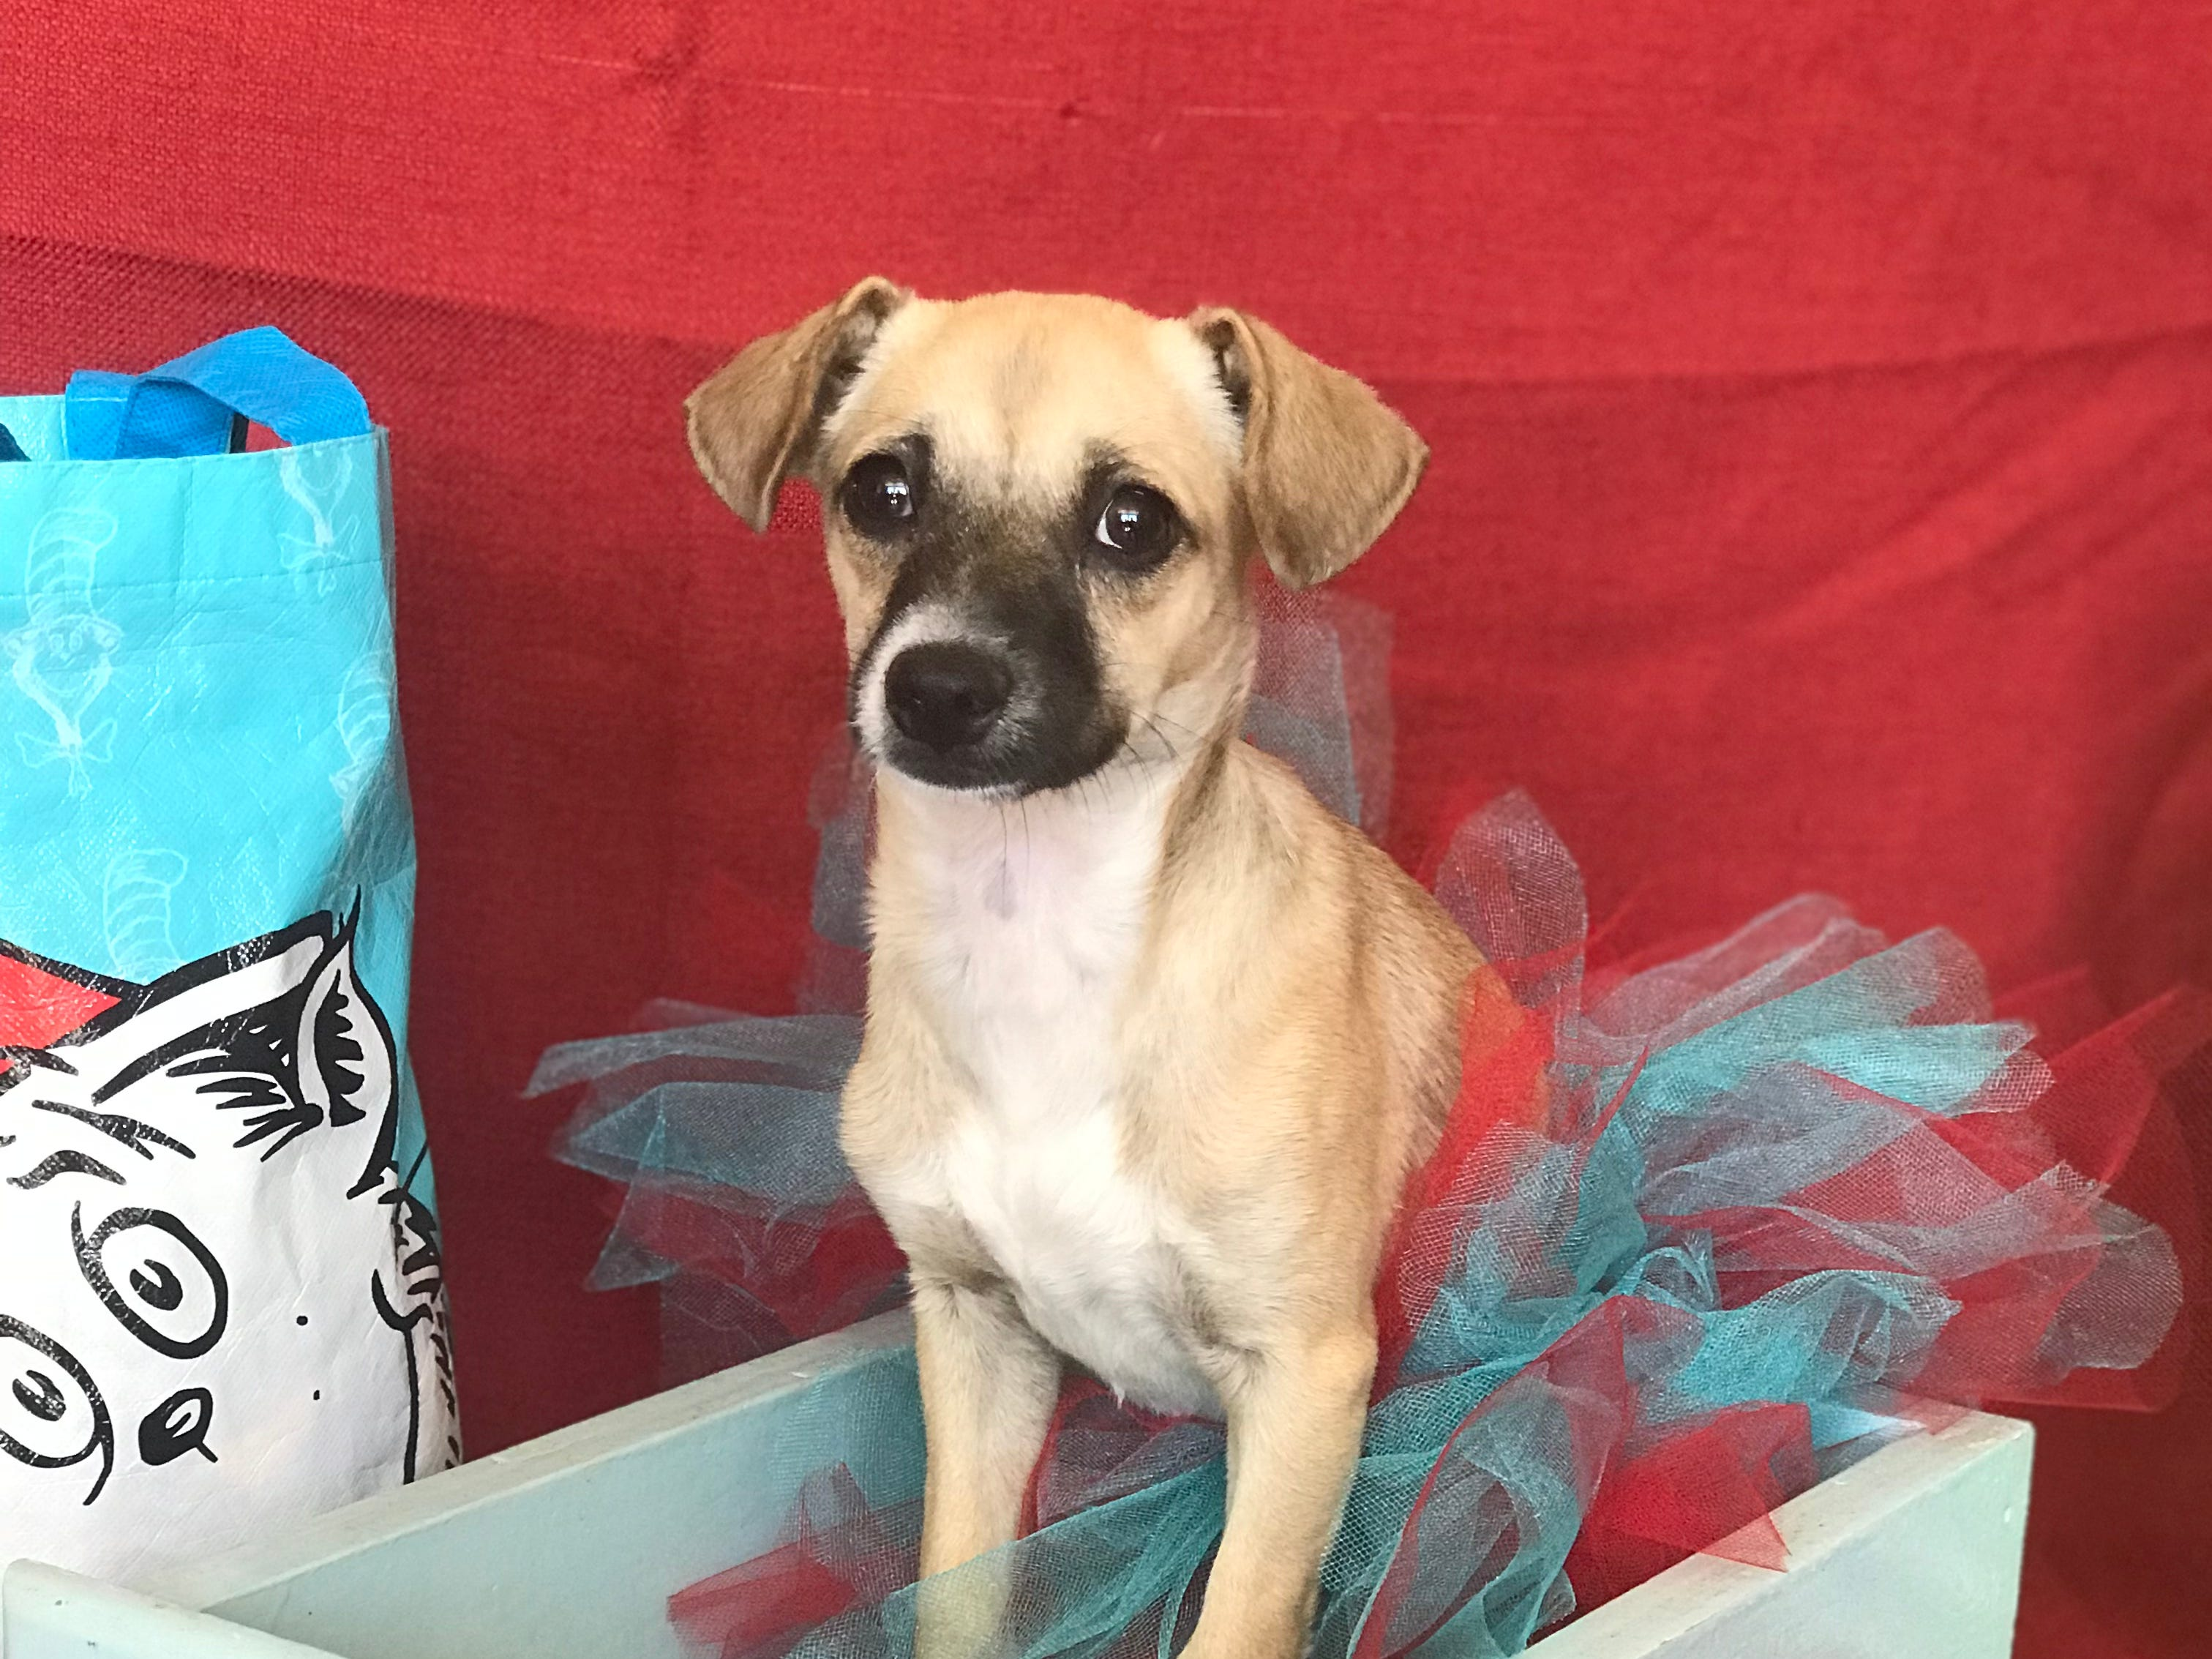 Evangelina is a sweet little Chihuahua-terrier blend who's around 4-months old and gets along with other dogs and cats. She's learning leash manners and is being house trained. Visit Tails of Rescue Adoption Center, 981 Lake Blvd., Redding. Call 448-7444. Go to http://tailsofrescue.org.